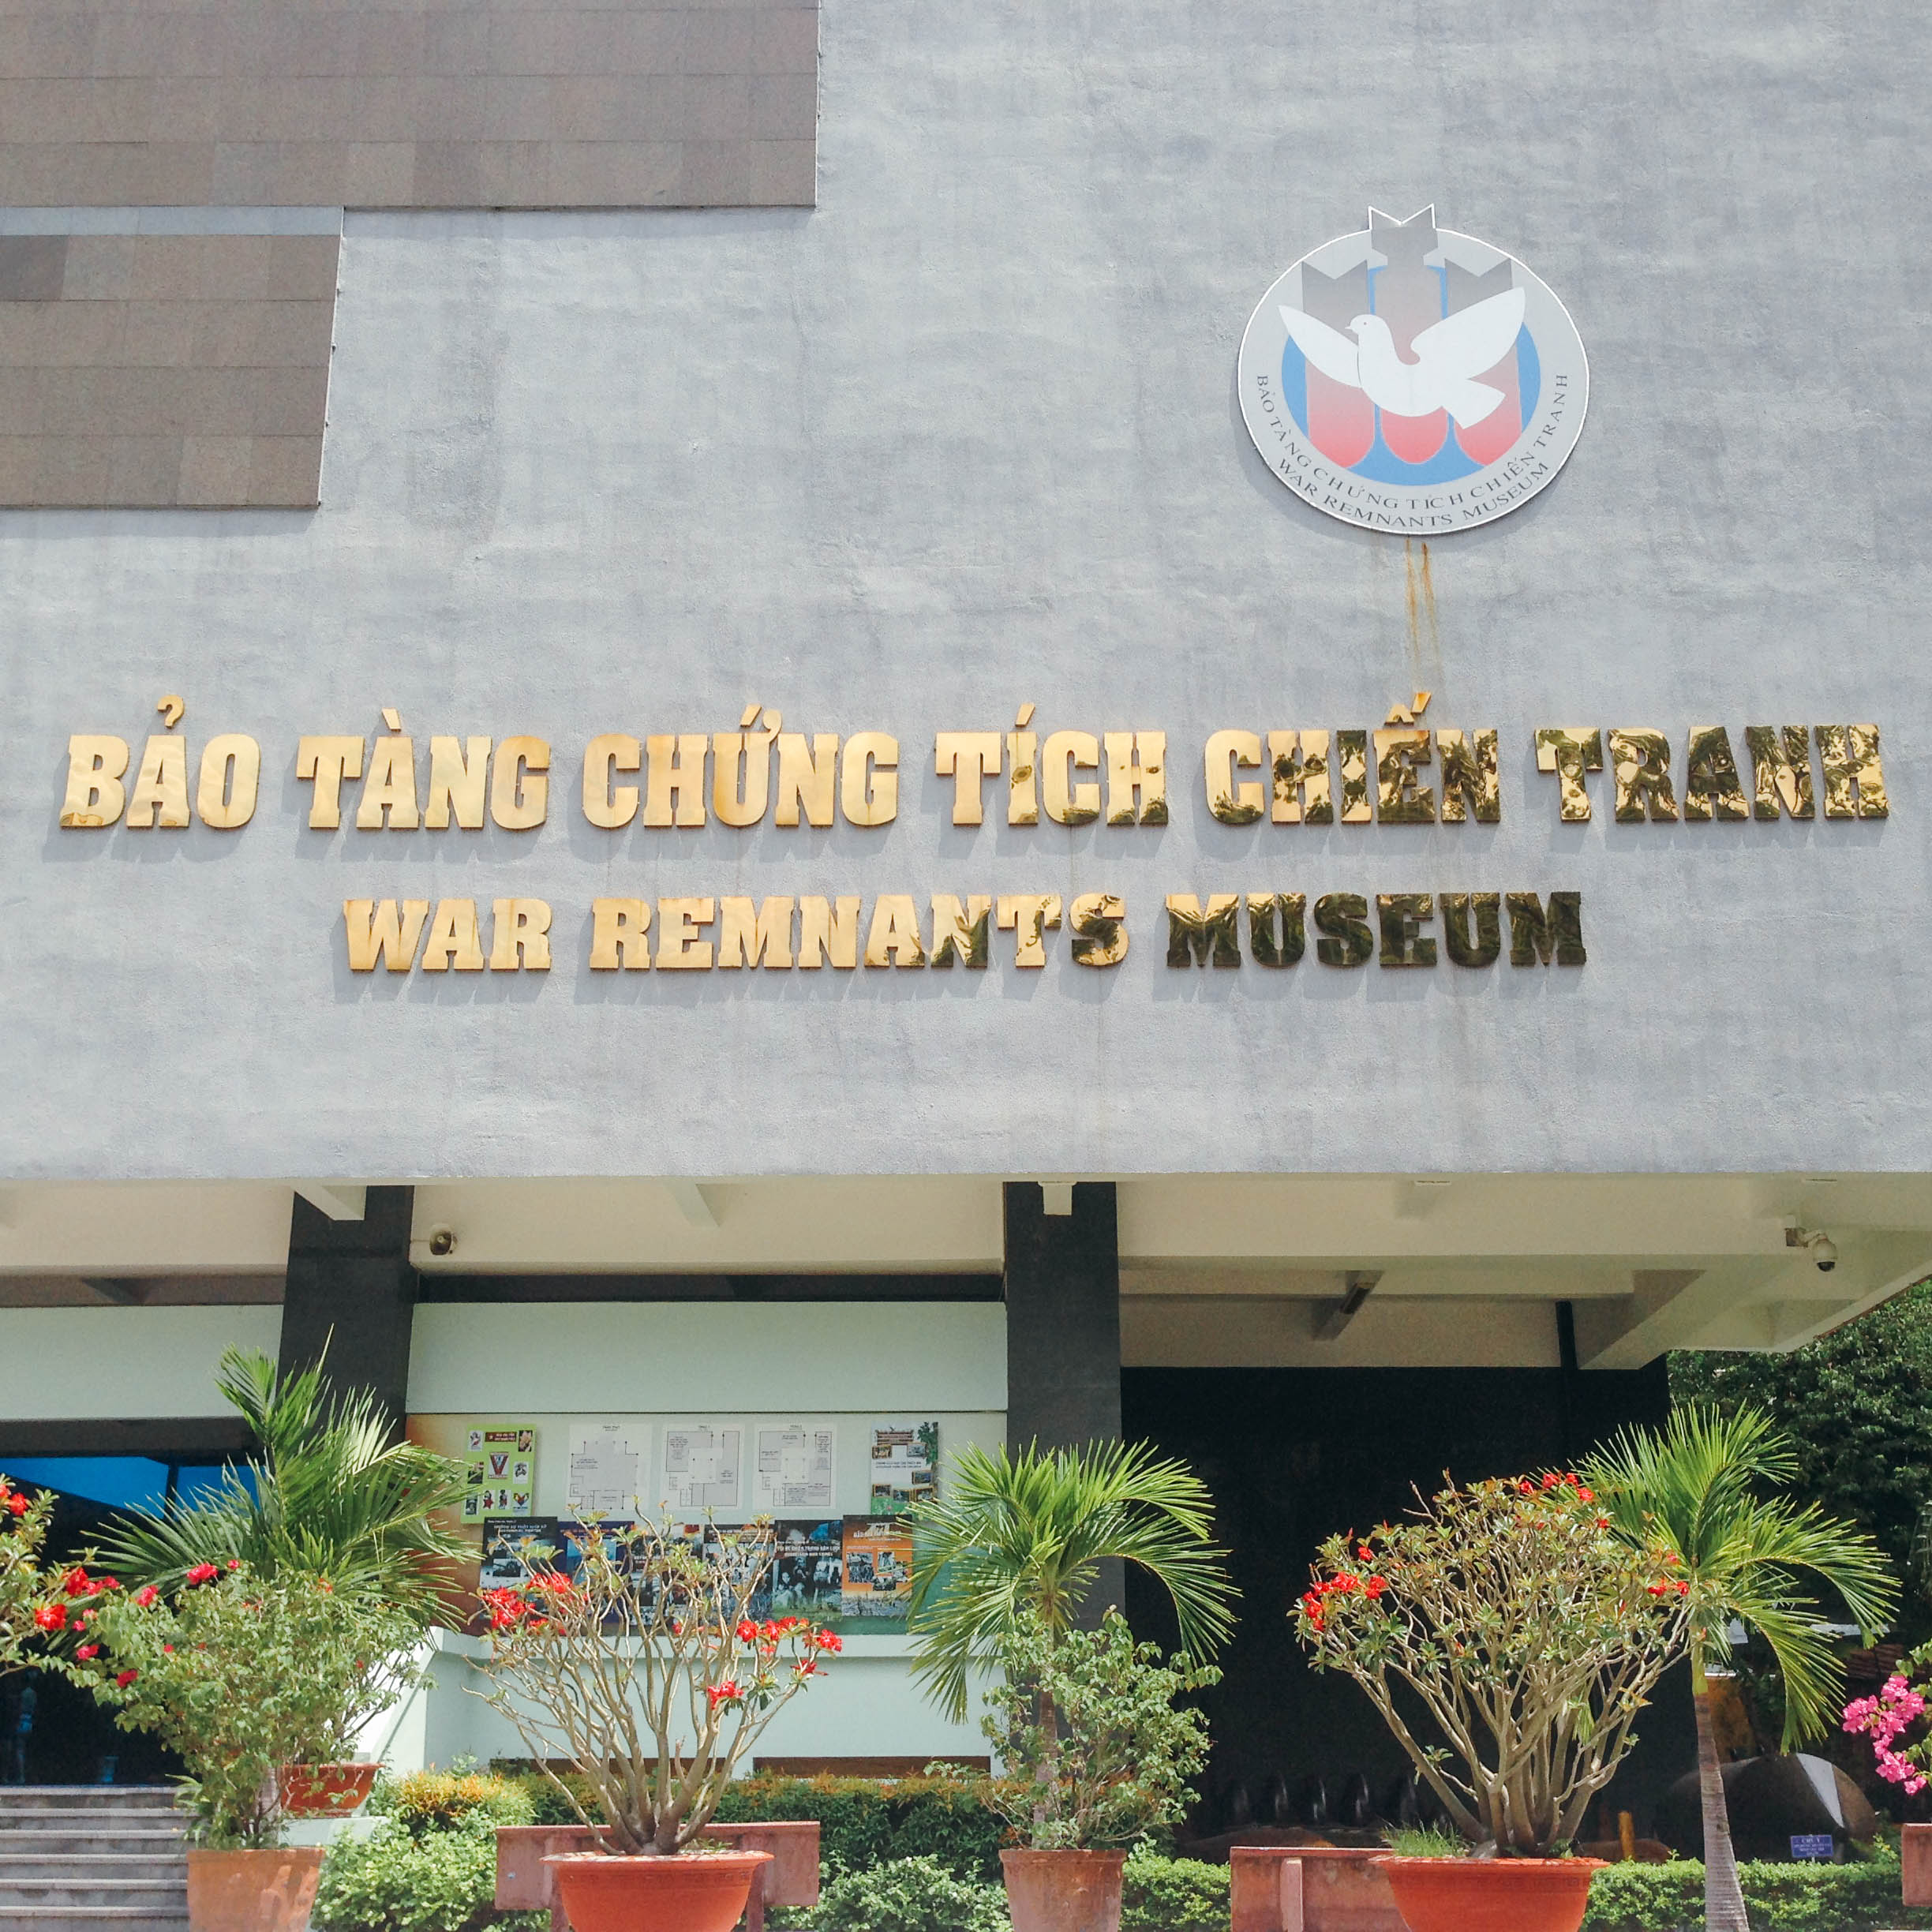 War Remnants Museum. Photo provided by Andrea Javier